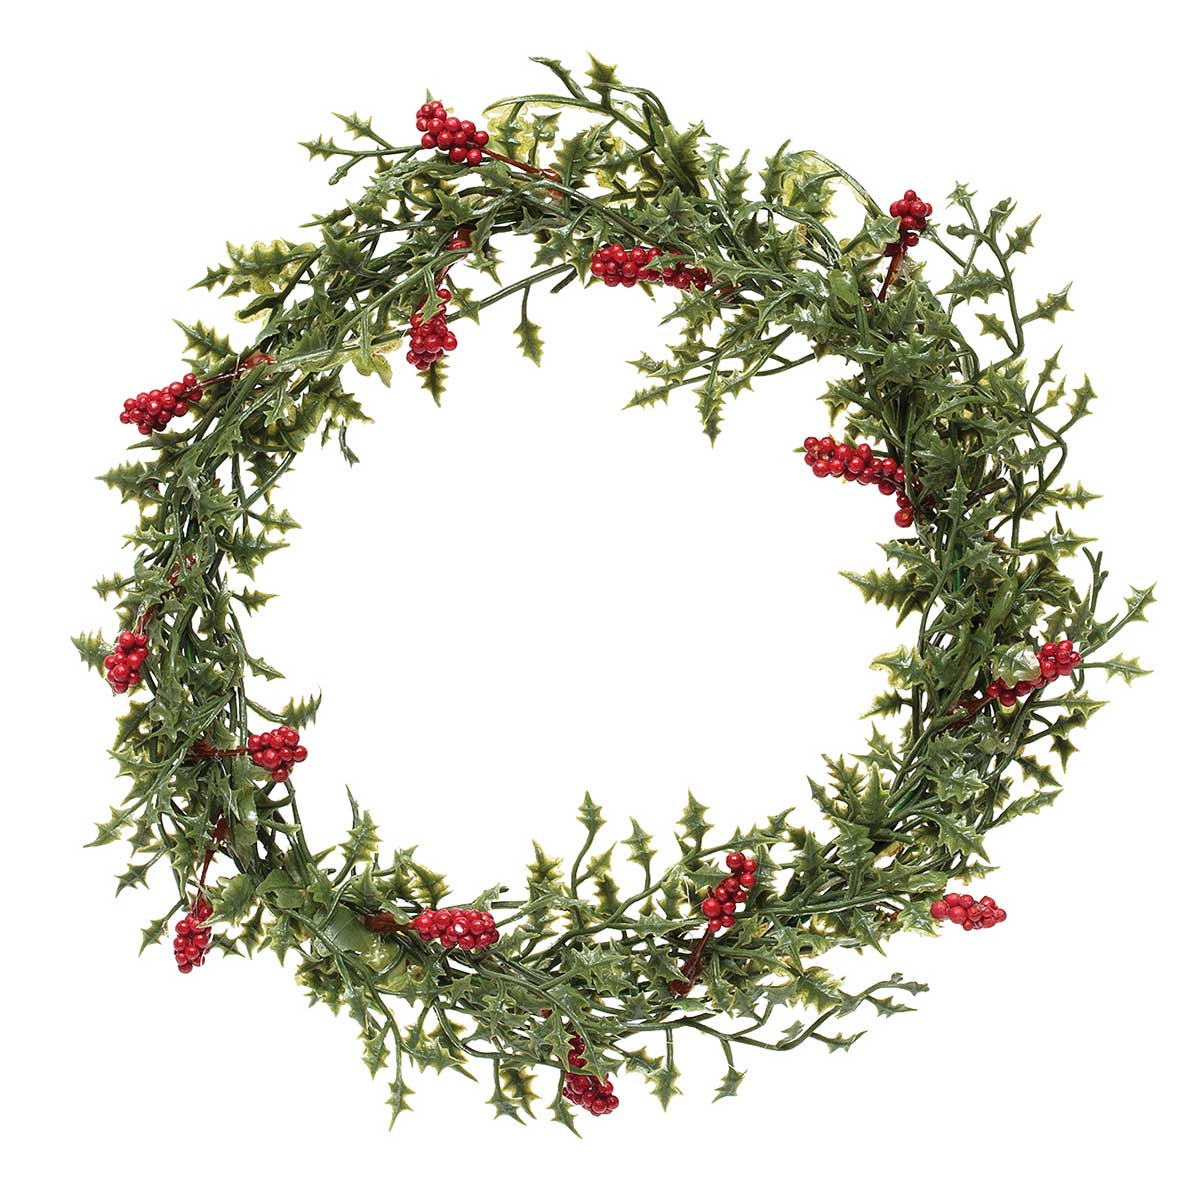 Natural Holly Mini Wreath 7 5 6 Inner Ring R7514 12 65 Zia Bella Fashions Fashion Jewelry Necklace Cuff Bracelet Threader Earrings Pewter Necklace Rings Cross Necklace Coral Peach Quartz Tahitian Waters Morrea